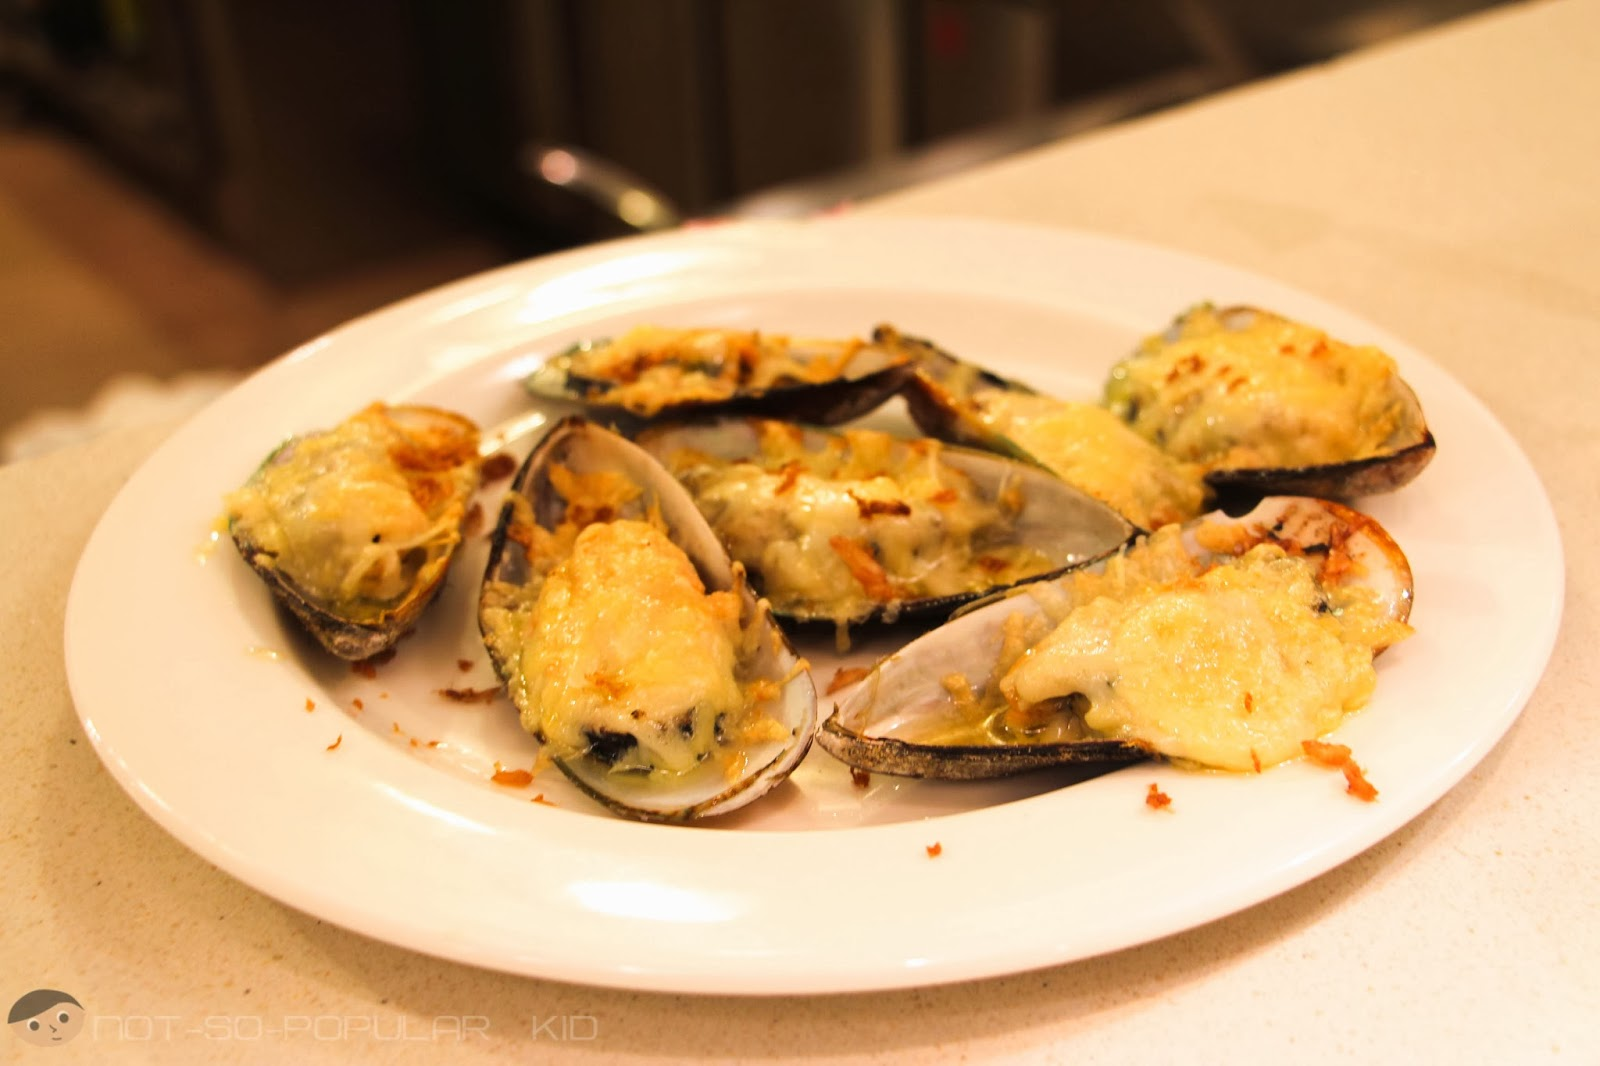 Grilling Station - have-it-your-way Baked Clams of Midas Restaurant